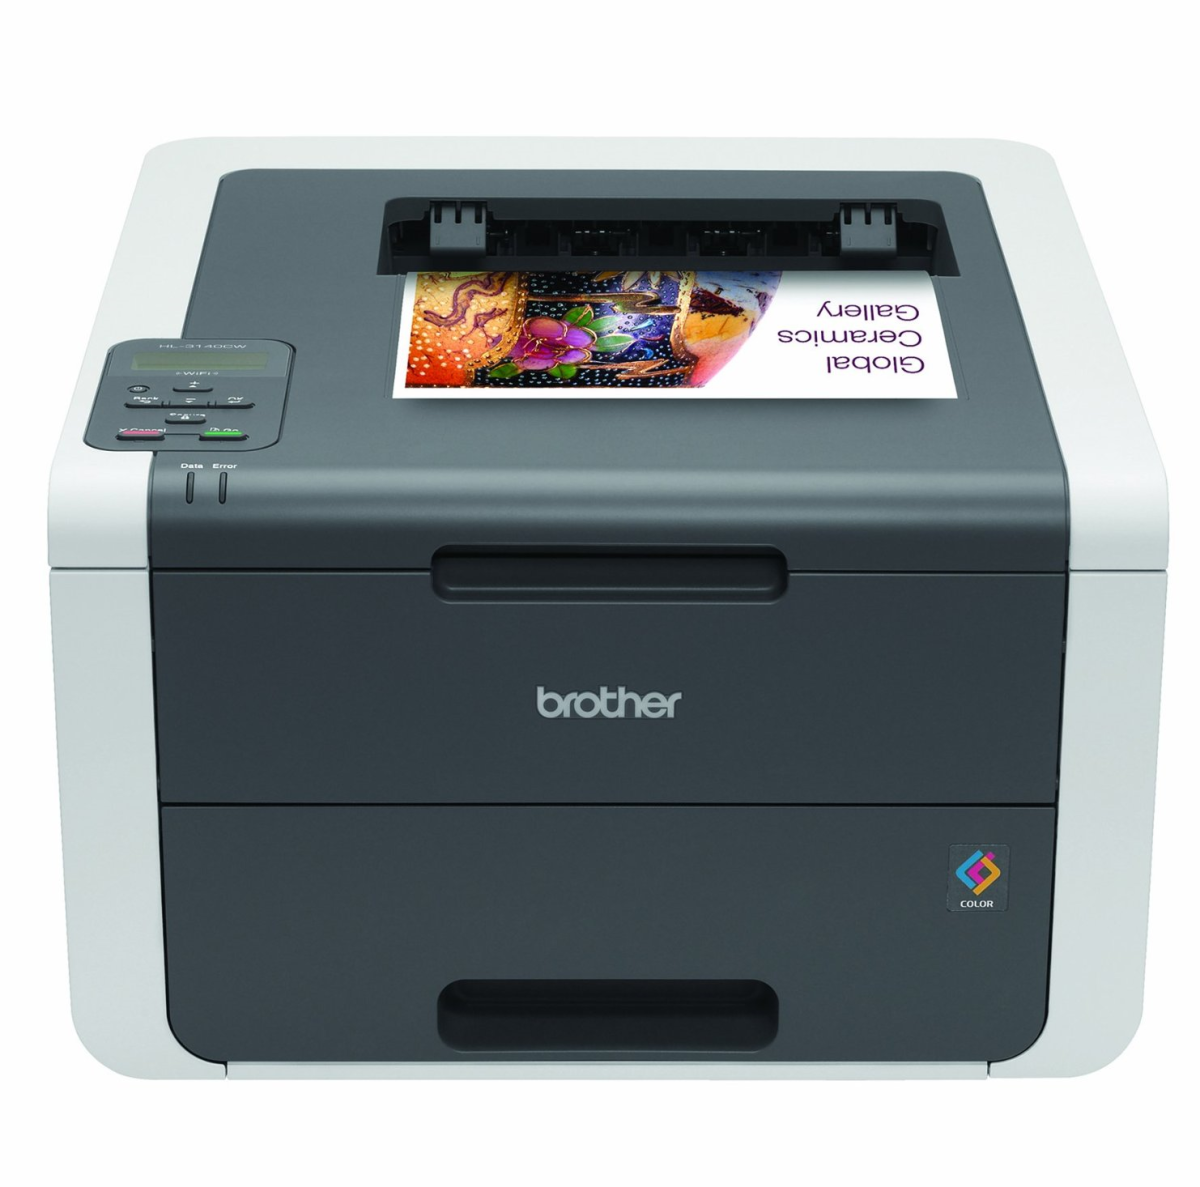 Best Affordable Color Laser Printer